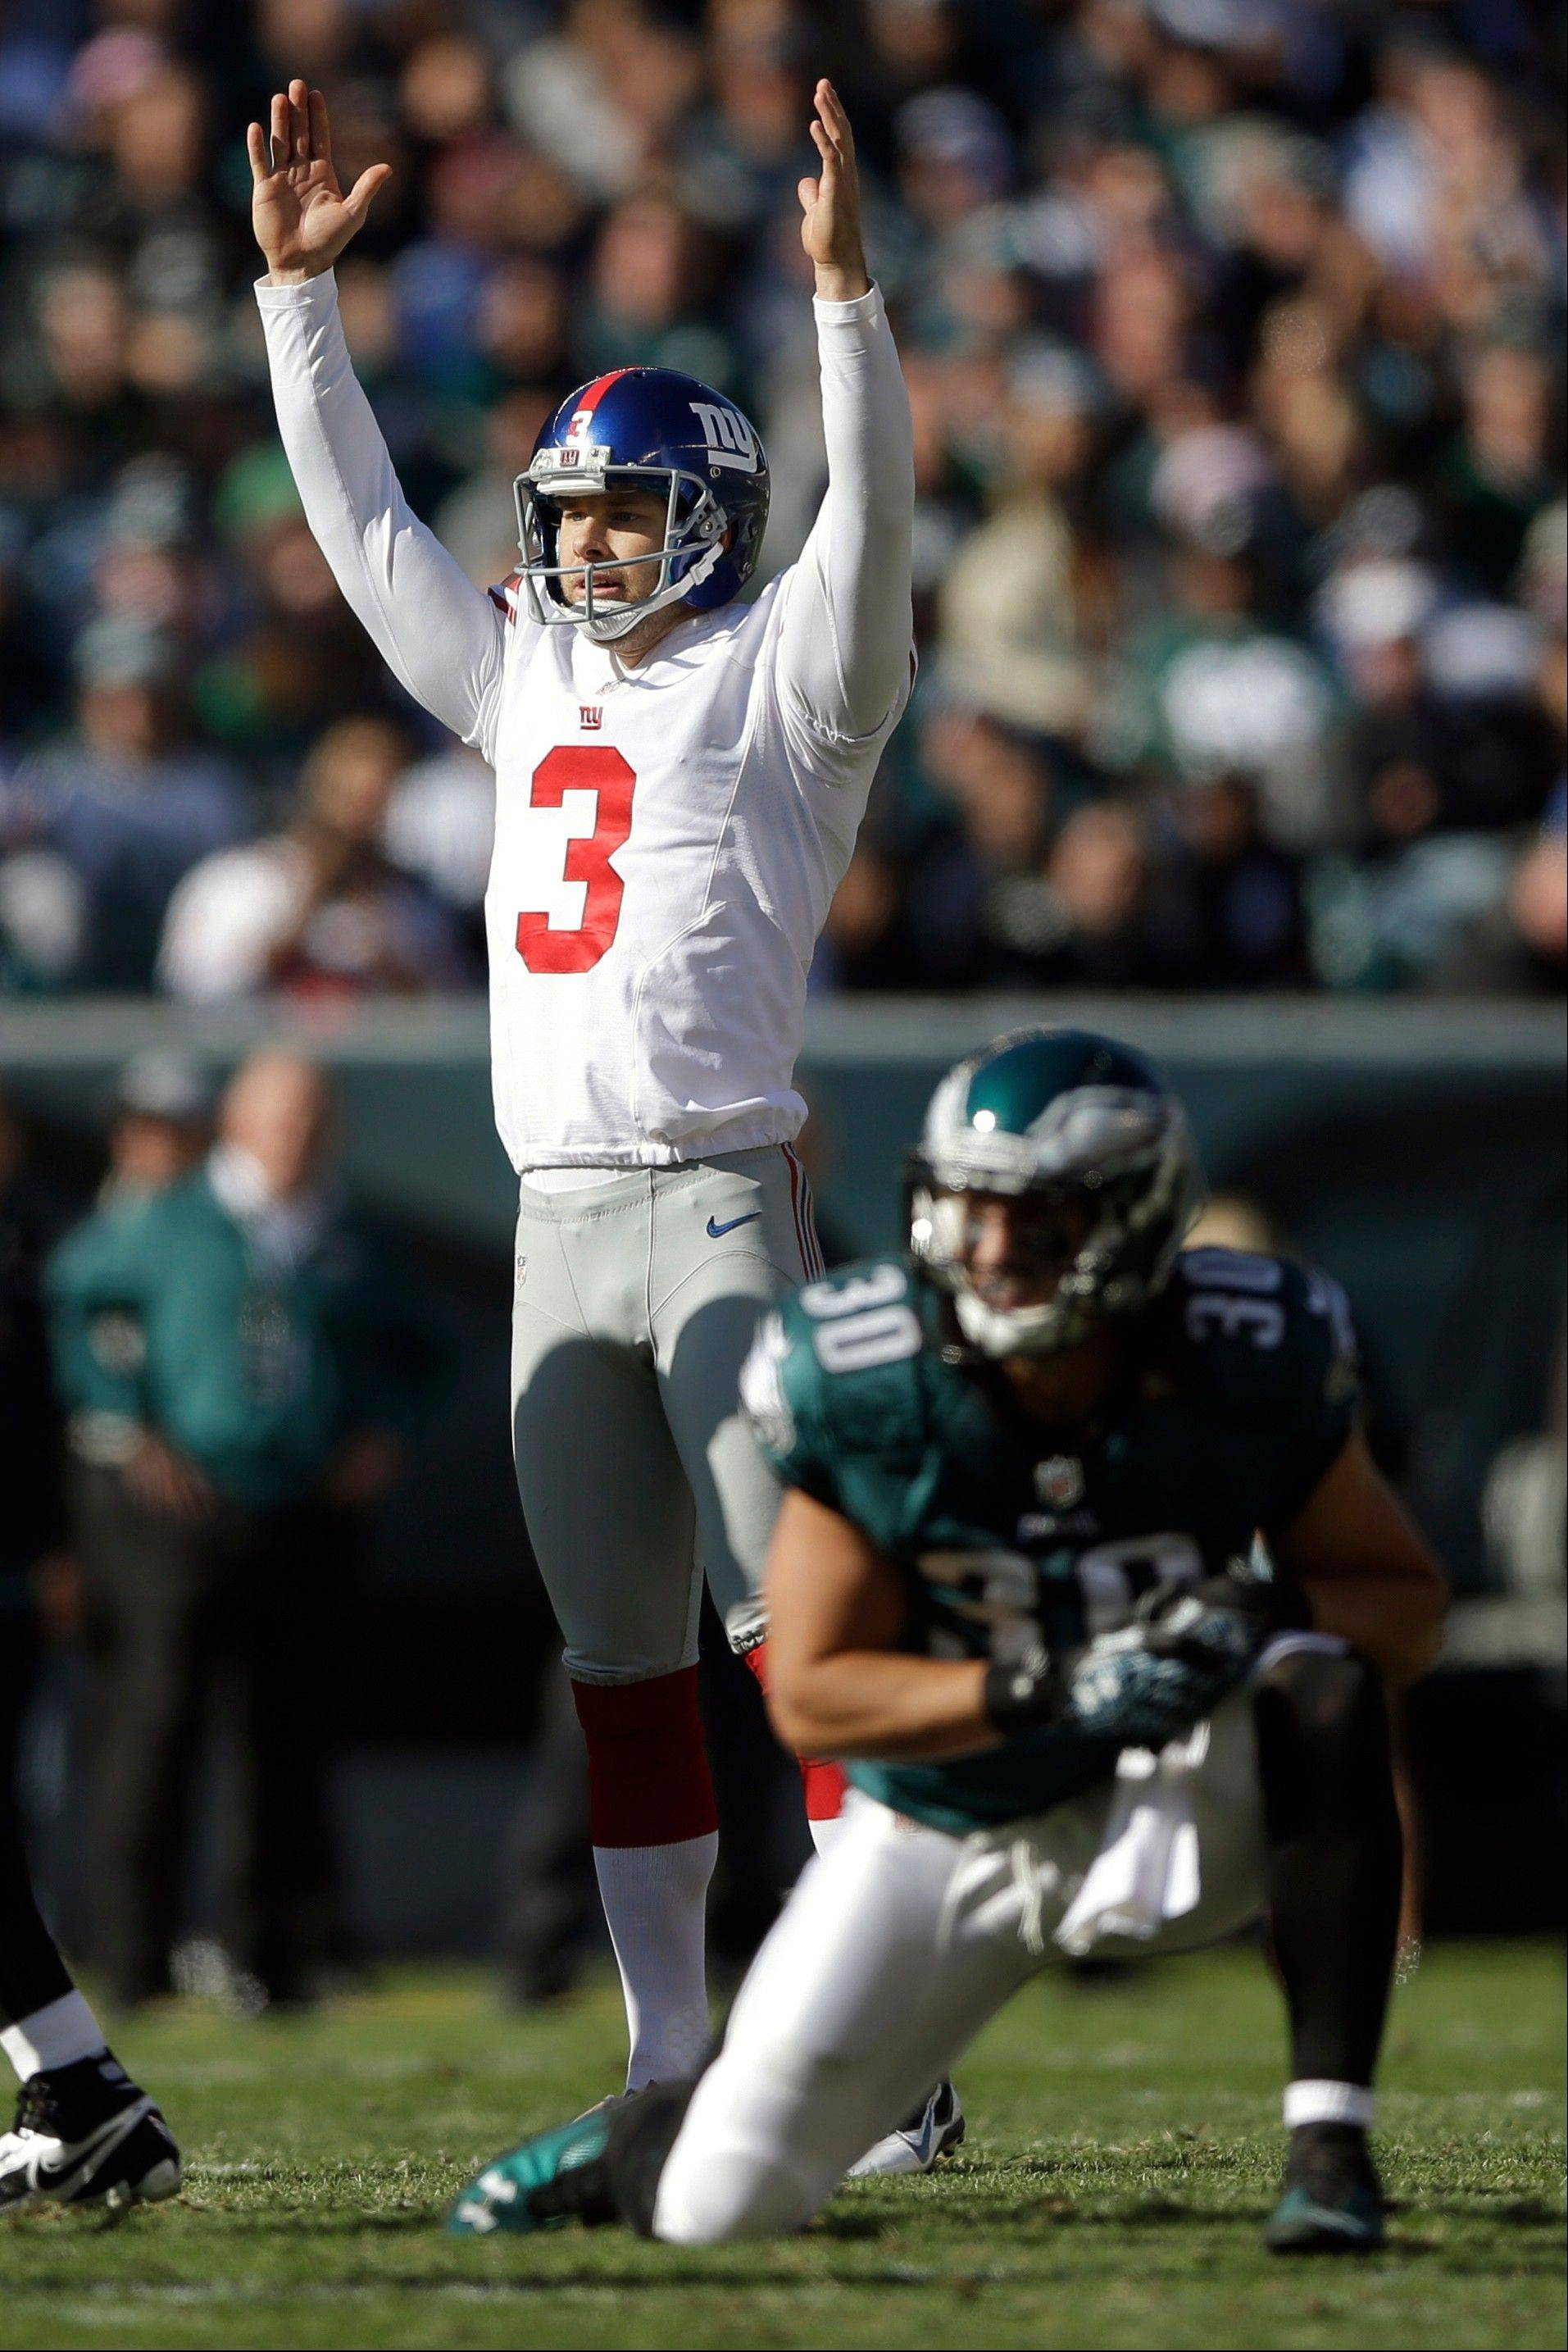 New York Giants kicker Josh Brown (3) celebrates as Philadelphia Eagles' Colt Anderson (30) reacts after Brown kicked a field goal during the first half.